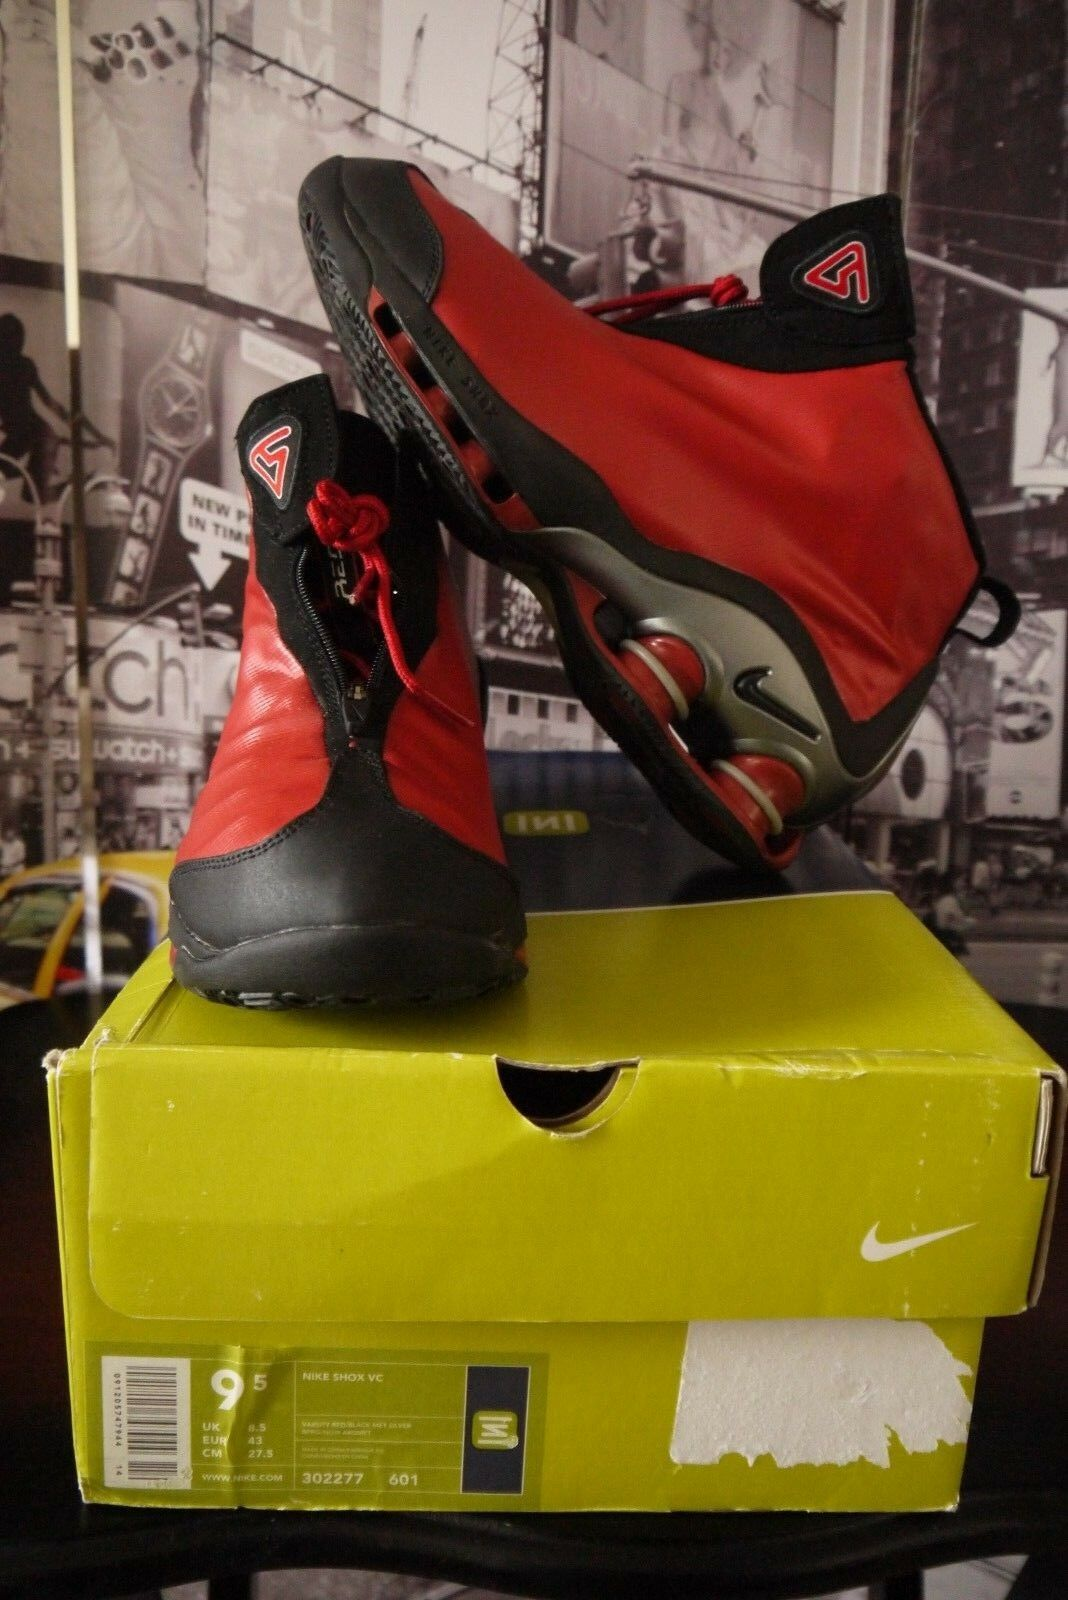 2001 NIKE SHOX VC 1 VINCE CARTER RED US 9.5 NEW RARE Collector